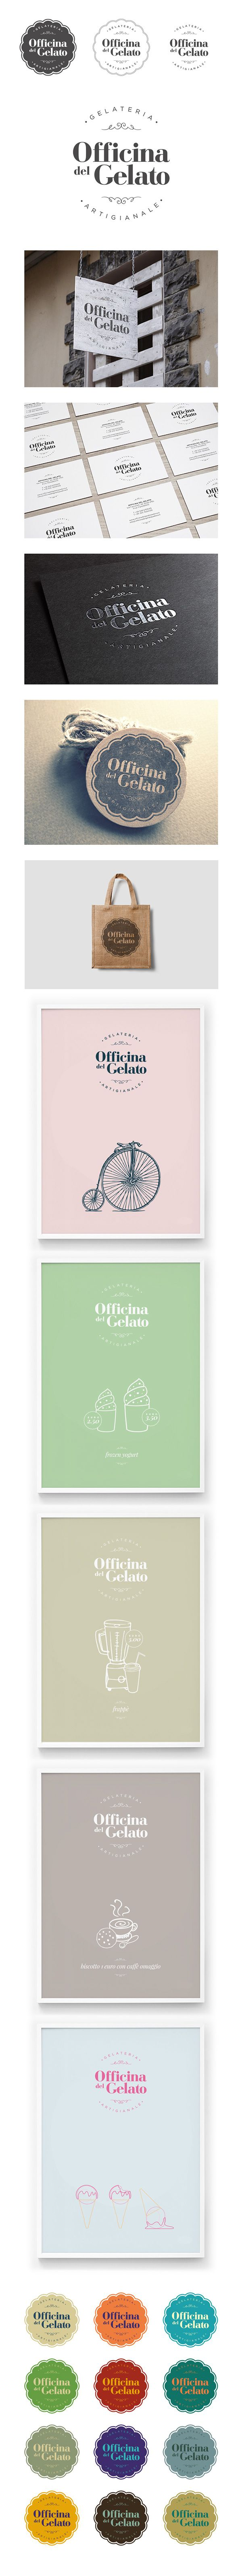 Officina del Gelato - Identity on Behance